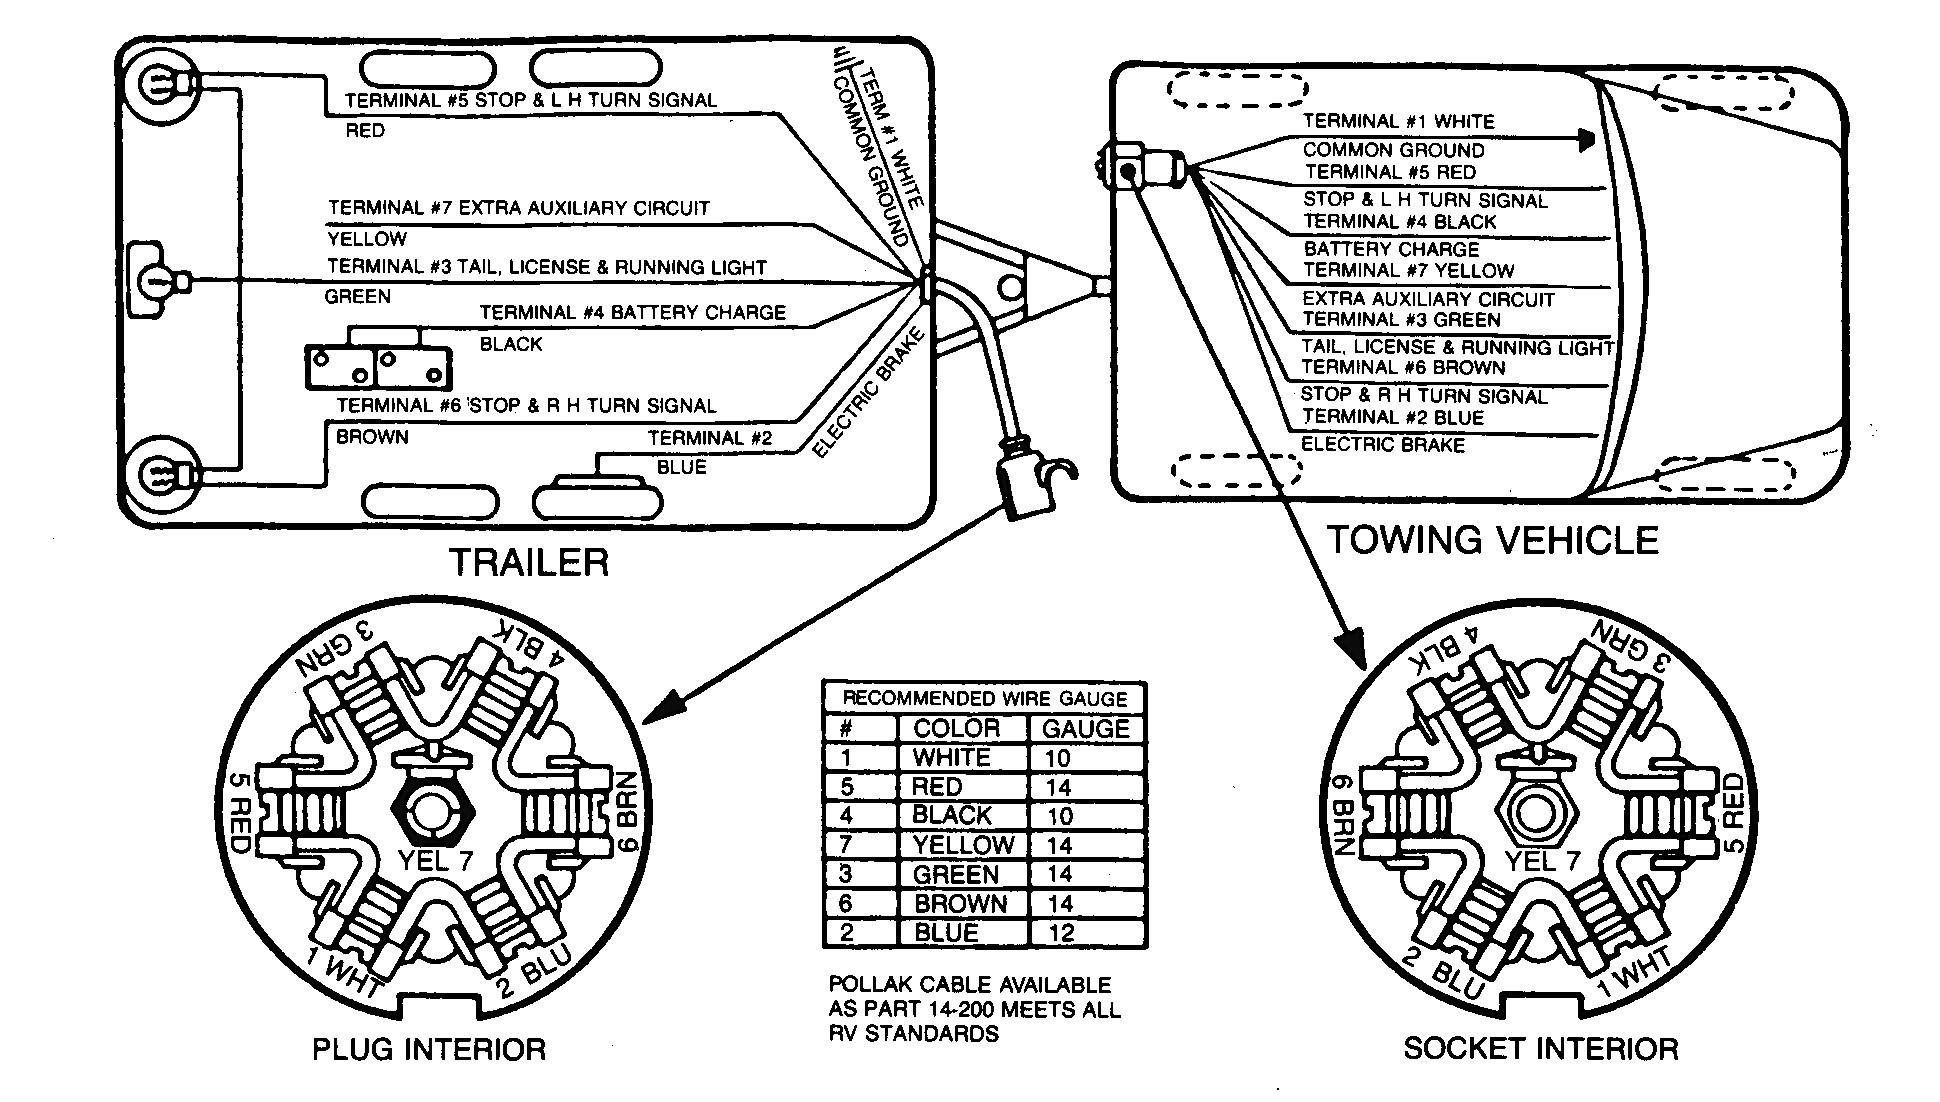 7 Blade Wiring Diagram For Trailer | Wiring Library - Big Tex Trailer Wiring Diagram